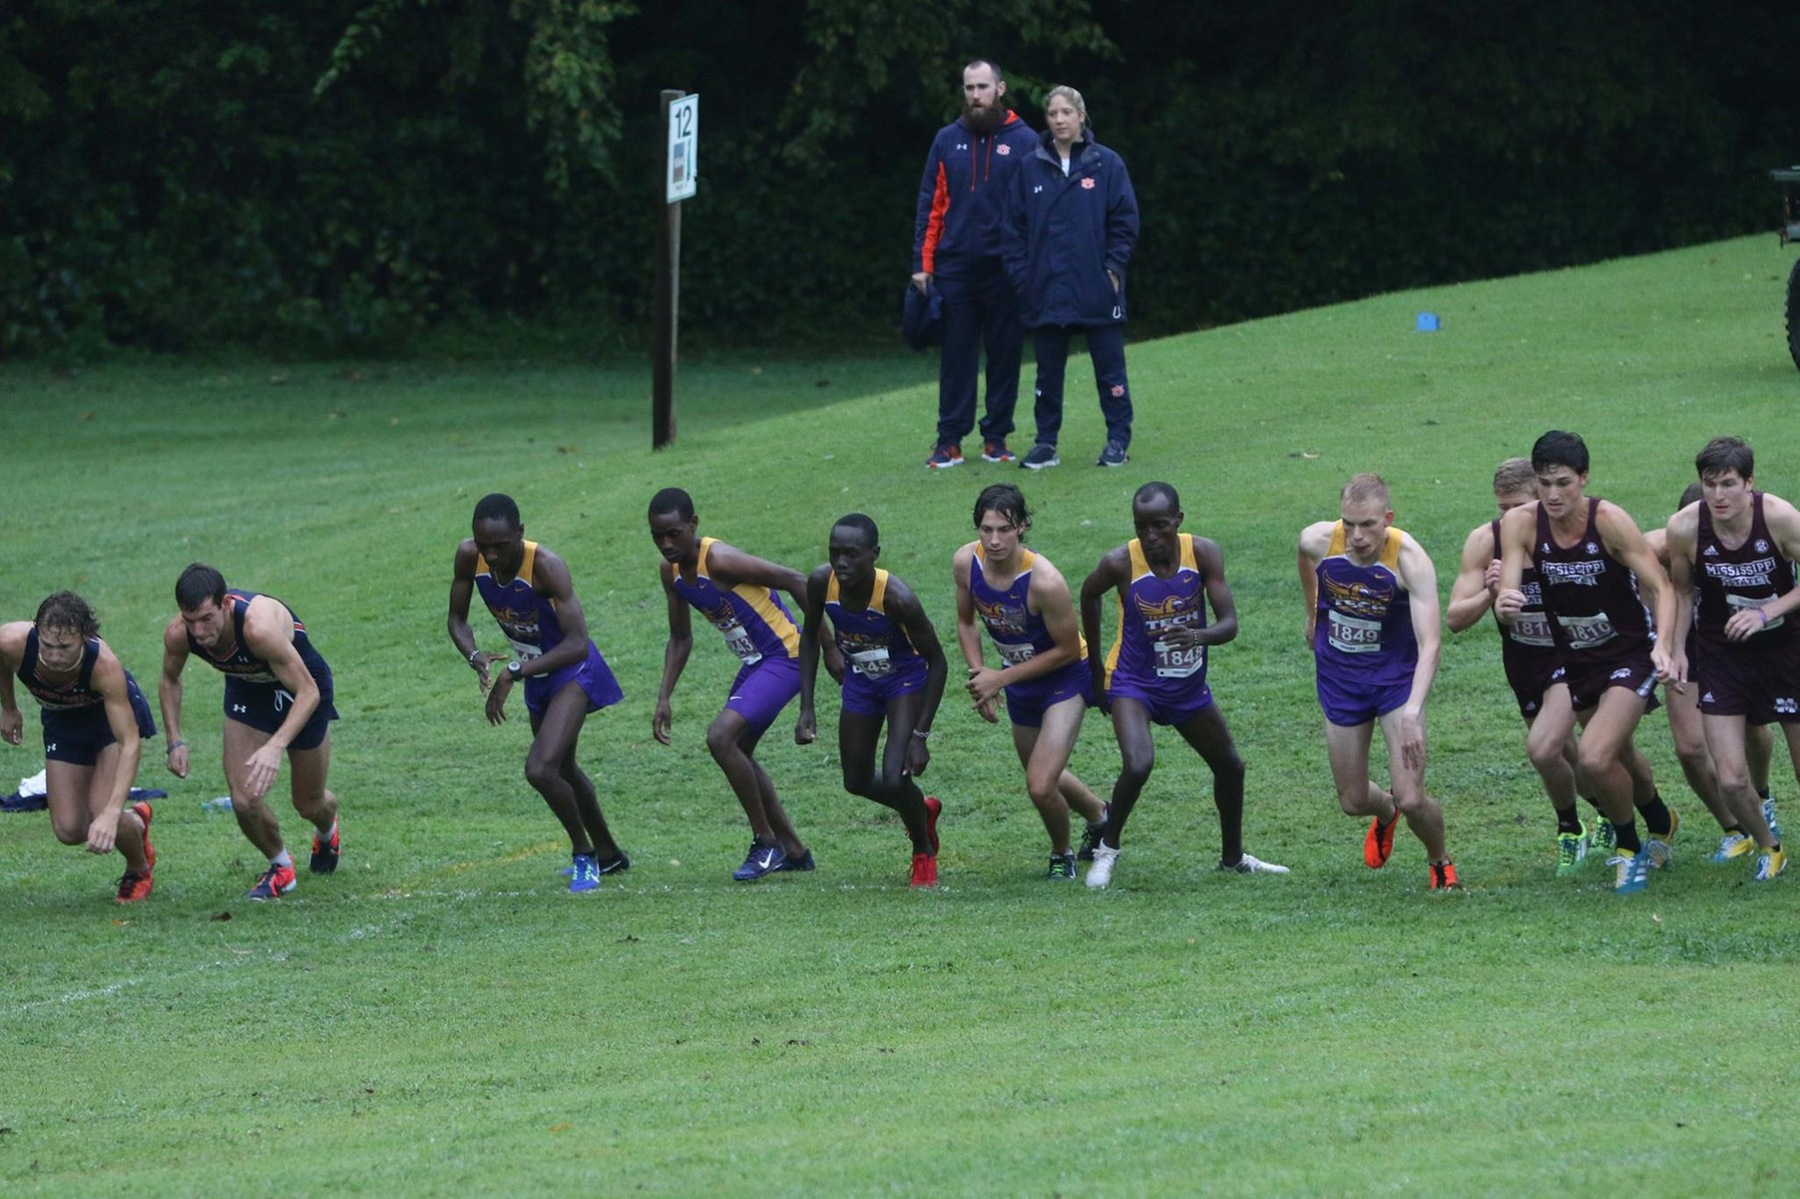 There's no place like home: Tech cross country to open season with Golden Eagle Invitational